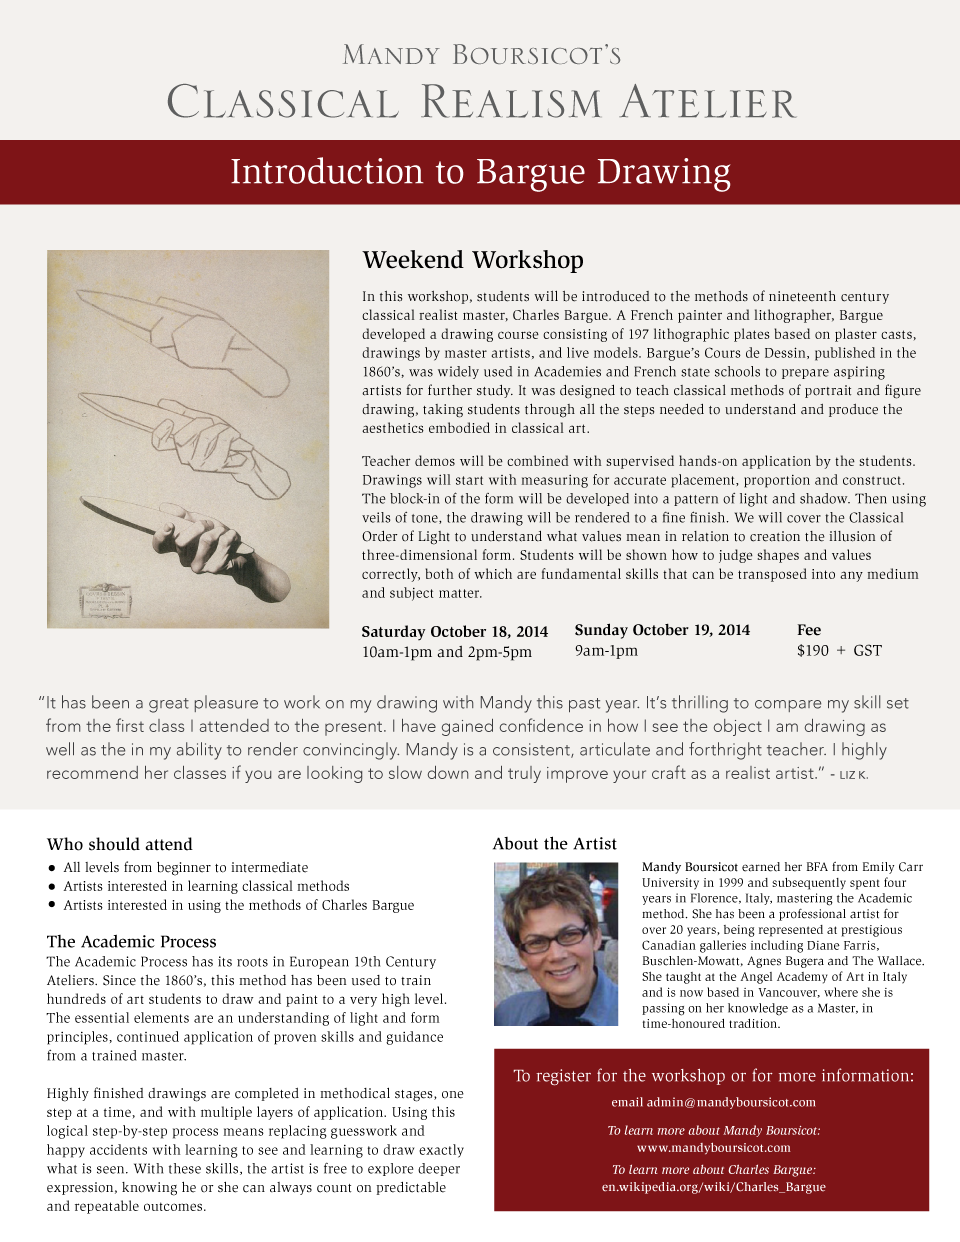 October Weekend Workshop: Introduction to Bargue Drawing